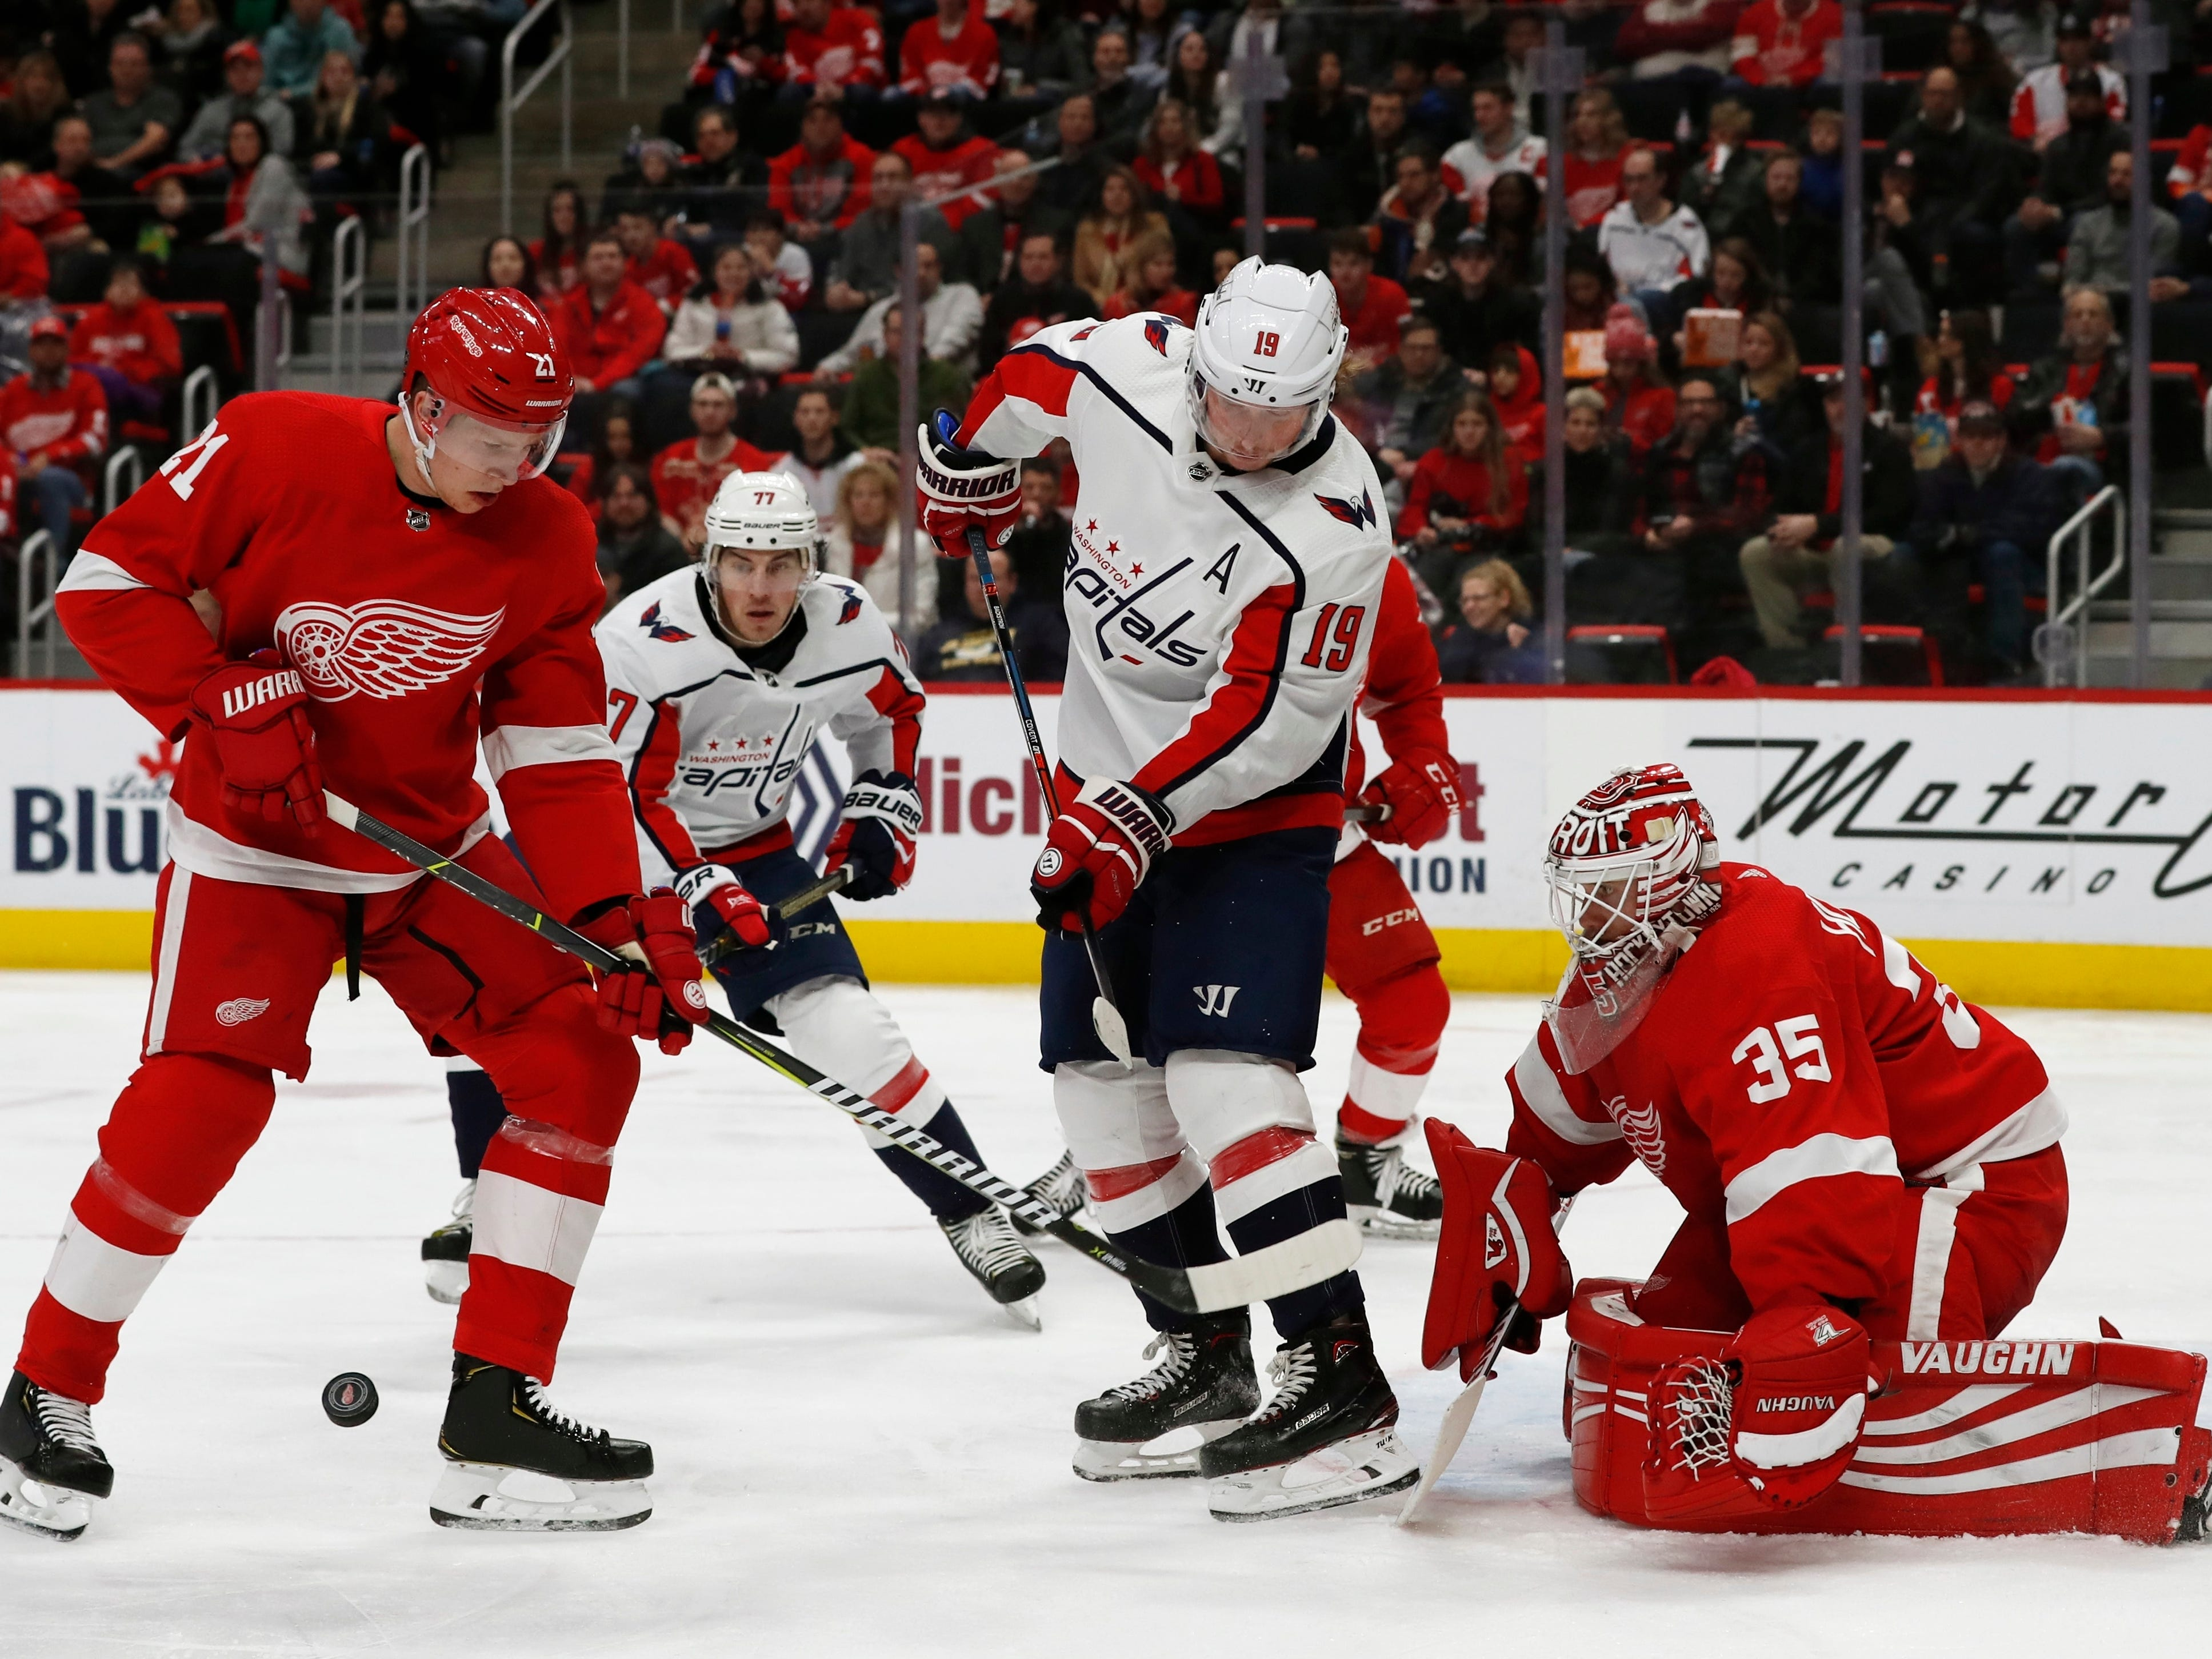 Detroit Red Wings defenseman Dennis Cholowski (21) helps deflect the puck away from Washington Capitals center Nicklas Backstrom (19) in front of goalie Jimmy Howard during the second period.